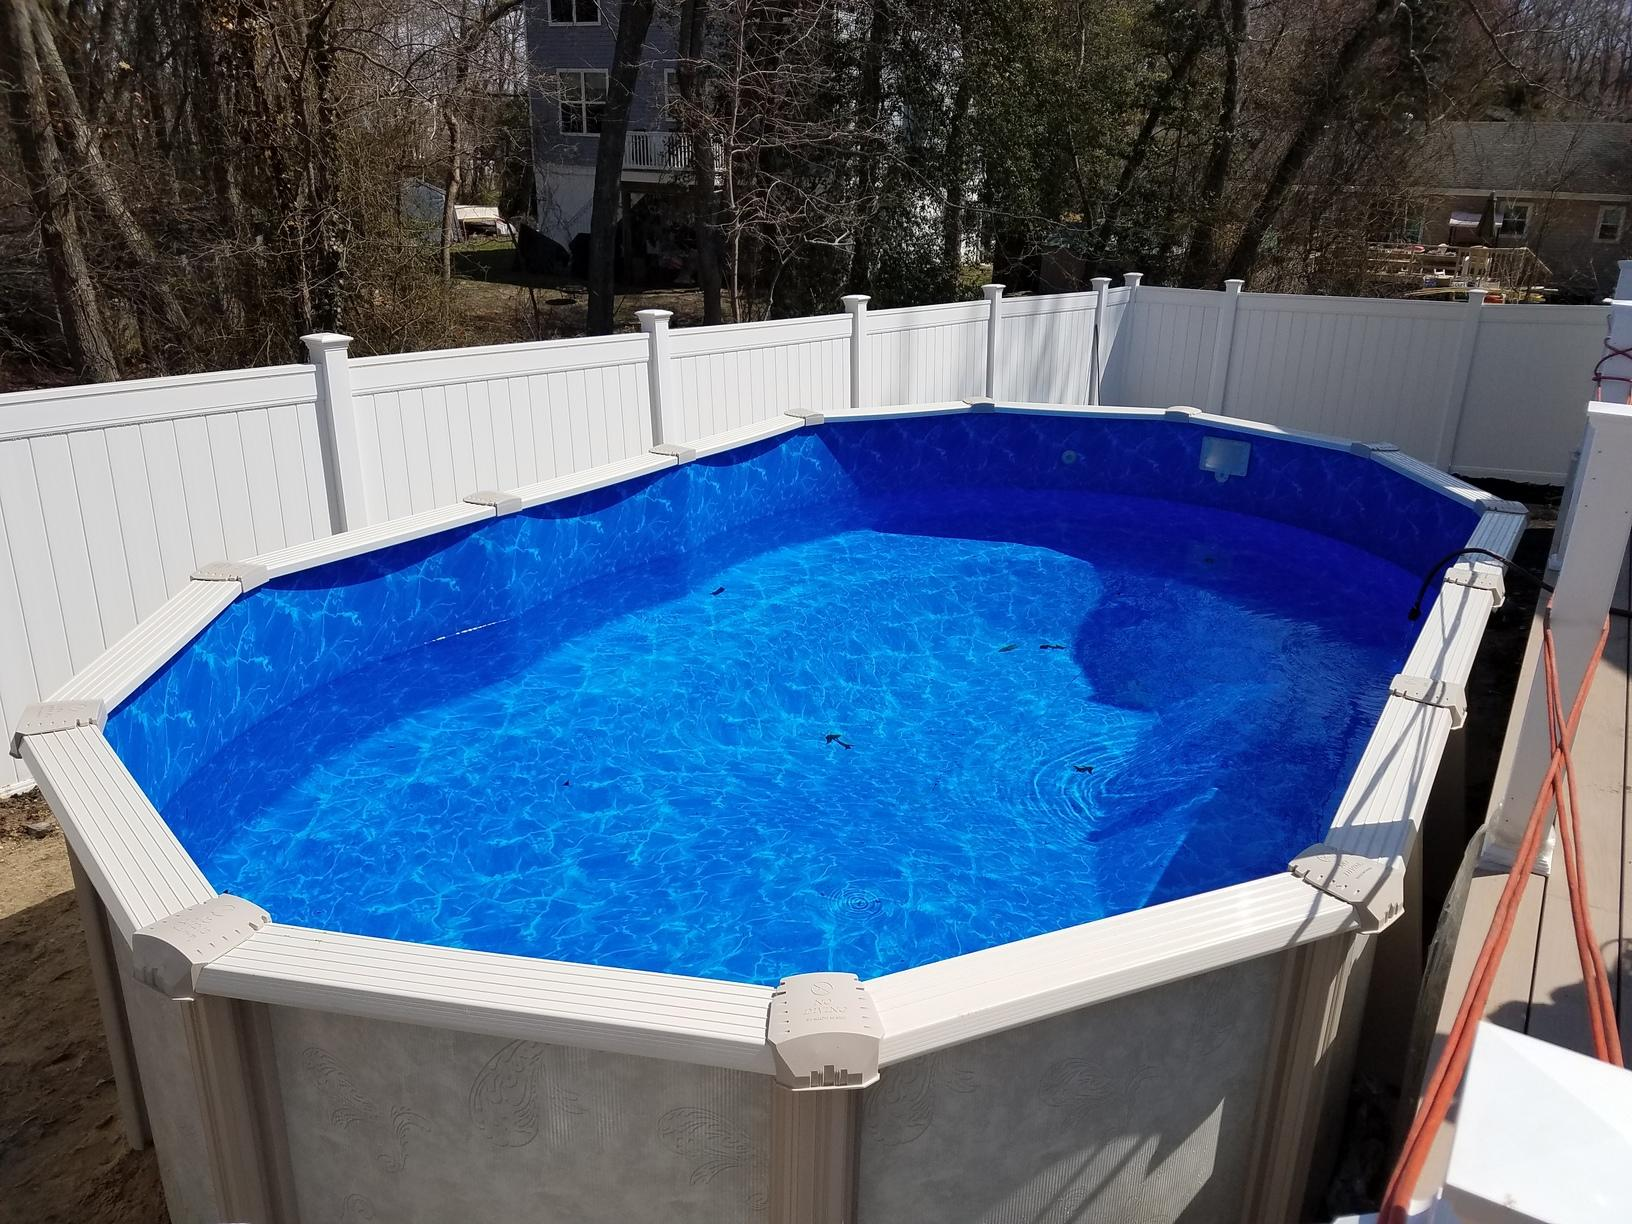 Above Ground Pool Installation with Hand Dig in Lanoka Harbor - After Photo